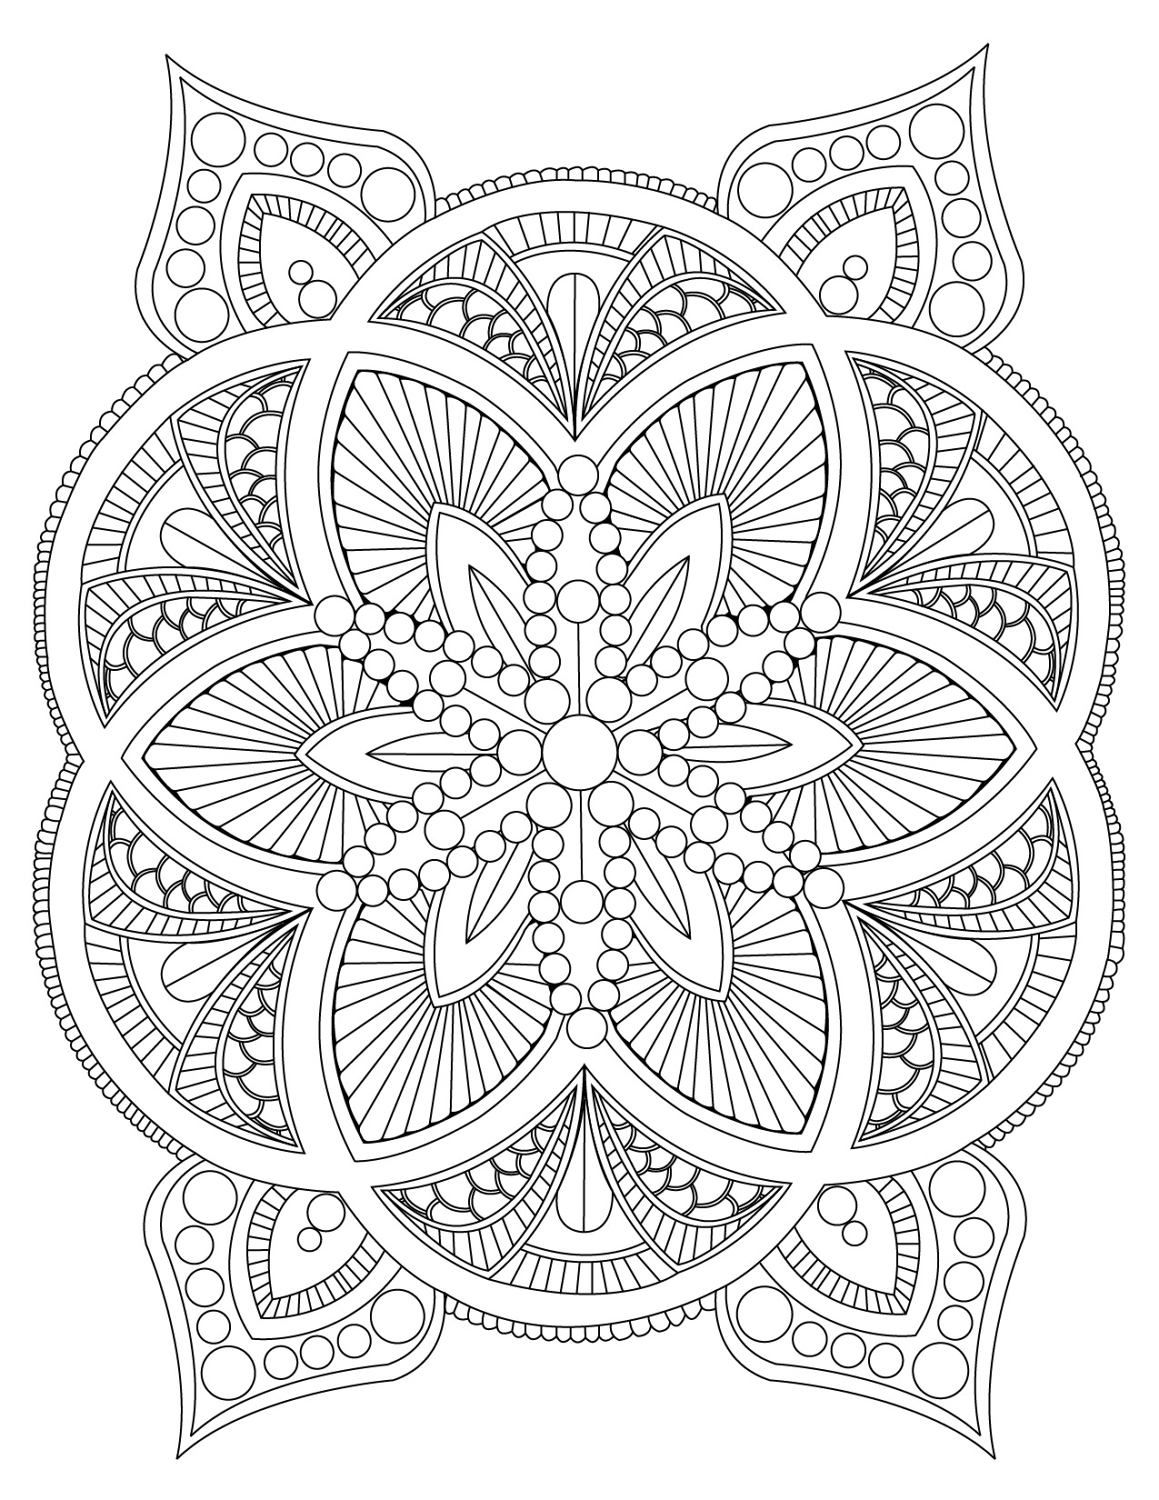 Abstract Mandala Coloring Page For Adults Digital Download Abstract Coloring Pages Mandala Coloring Pages Coloring Pages